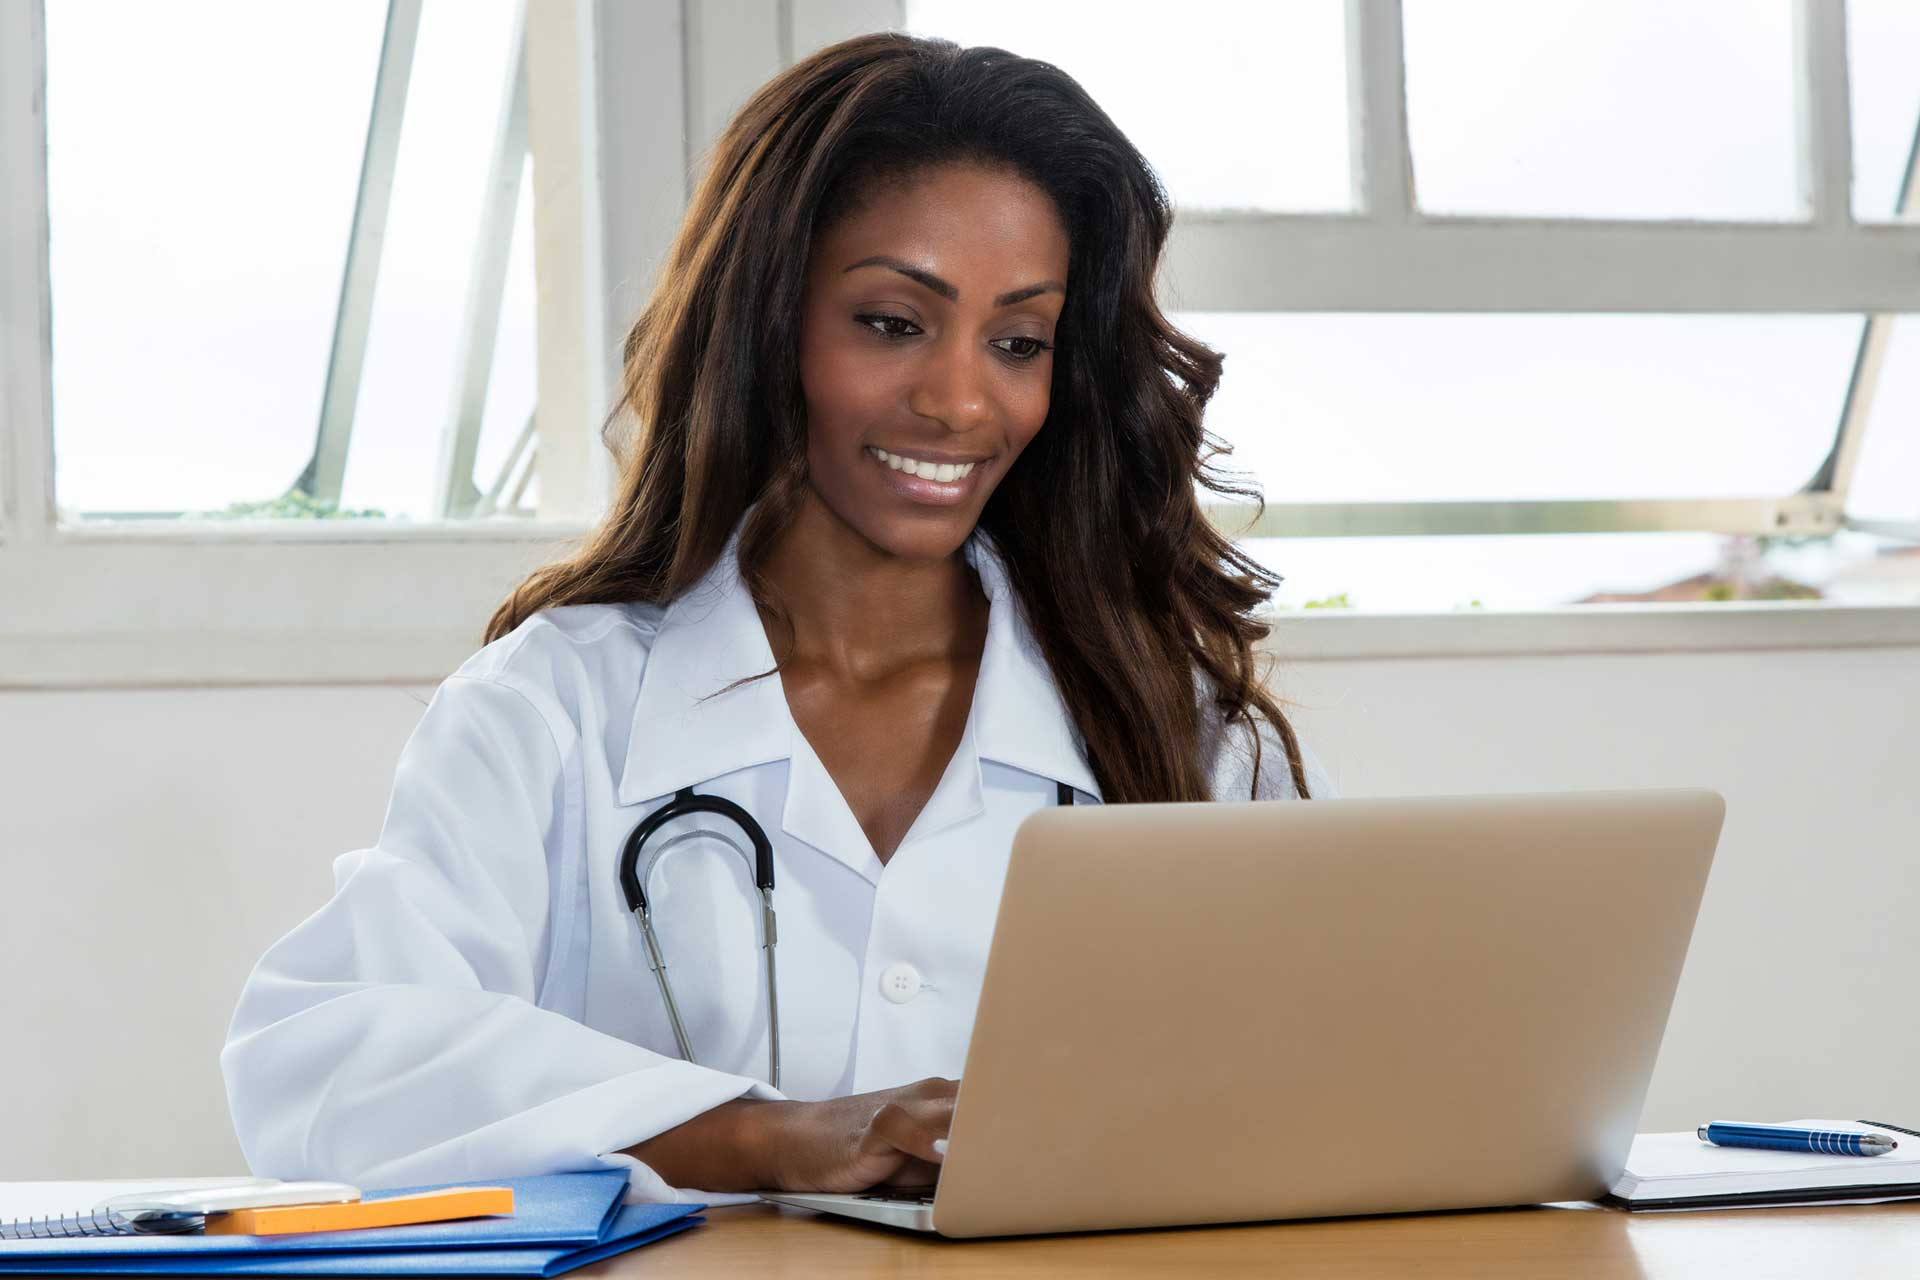 FNP using laptop to study using family nurse practitioner practice questions